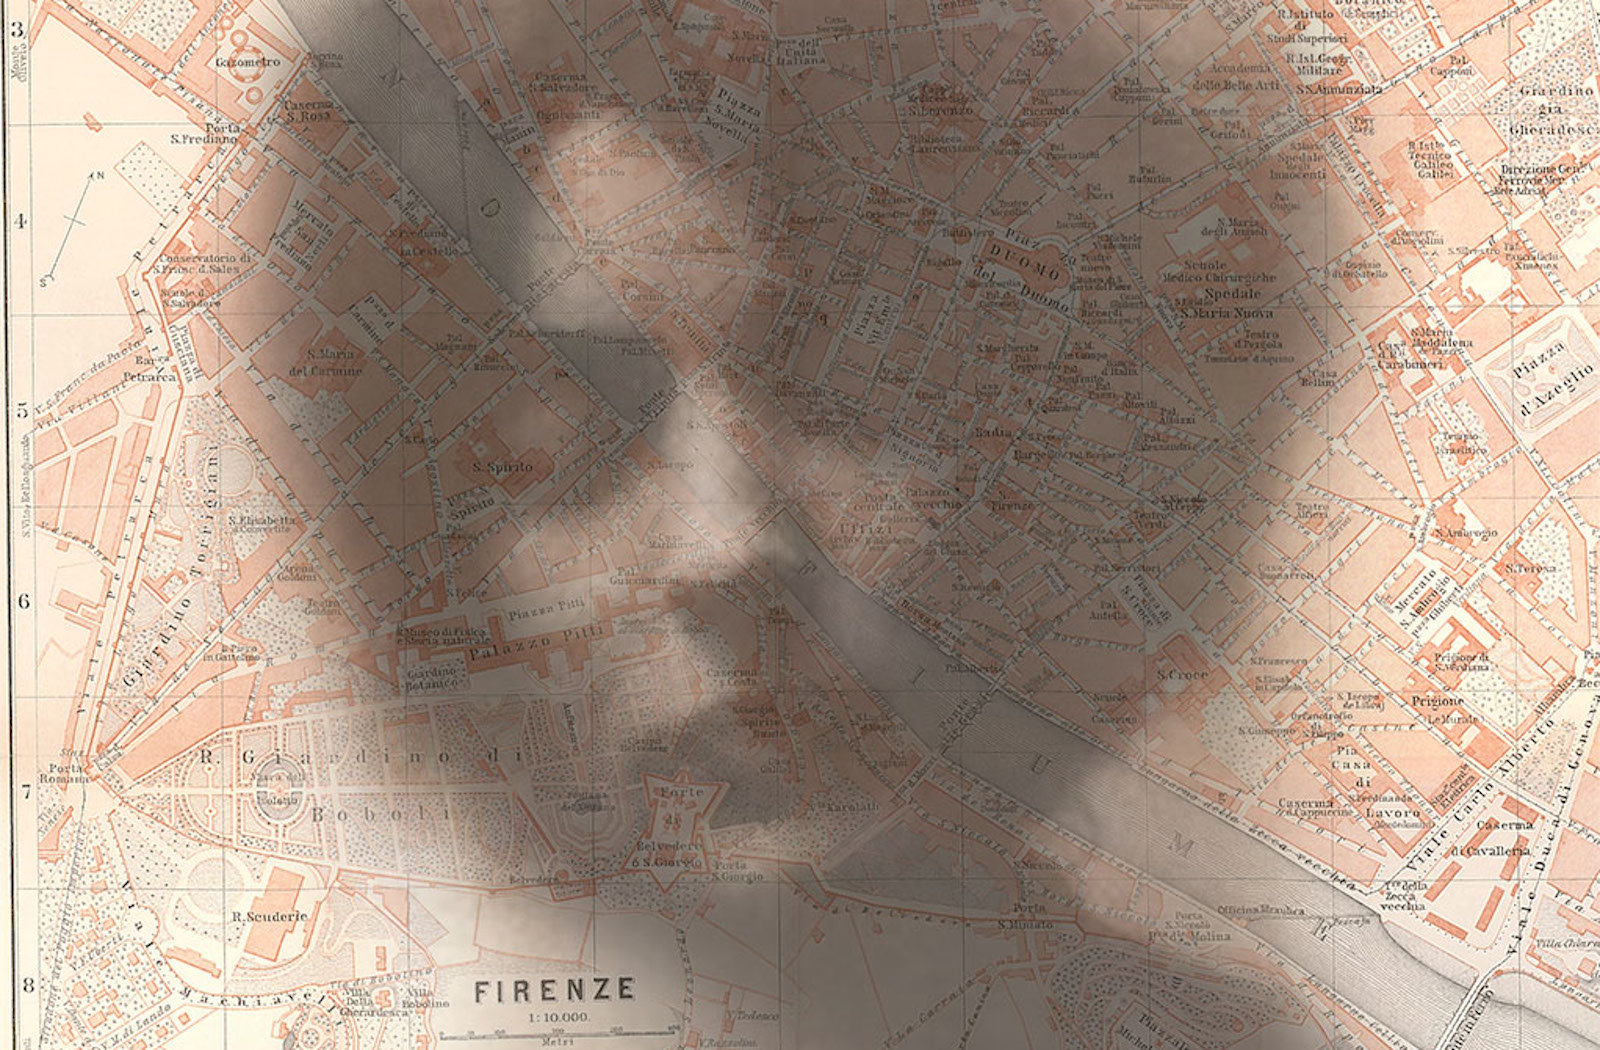 Head shot of Loy superimposed on Florence Baedeker Map